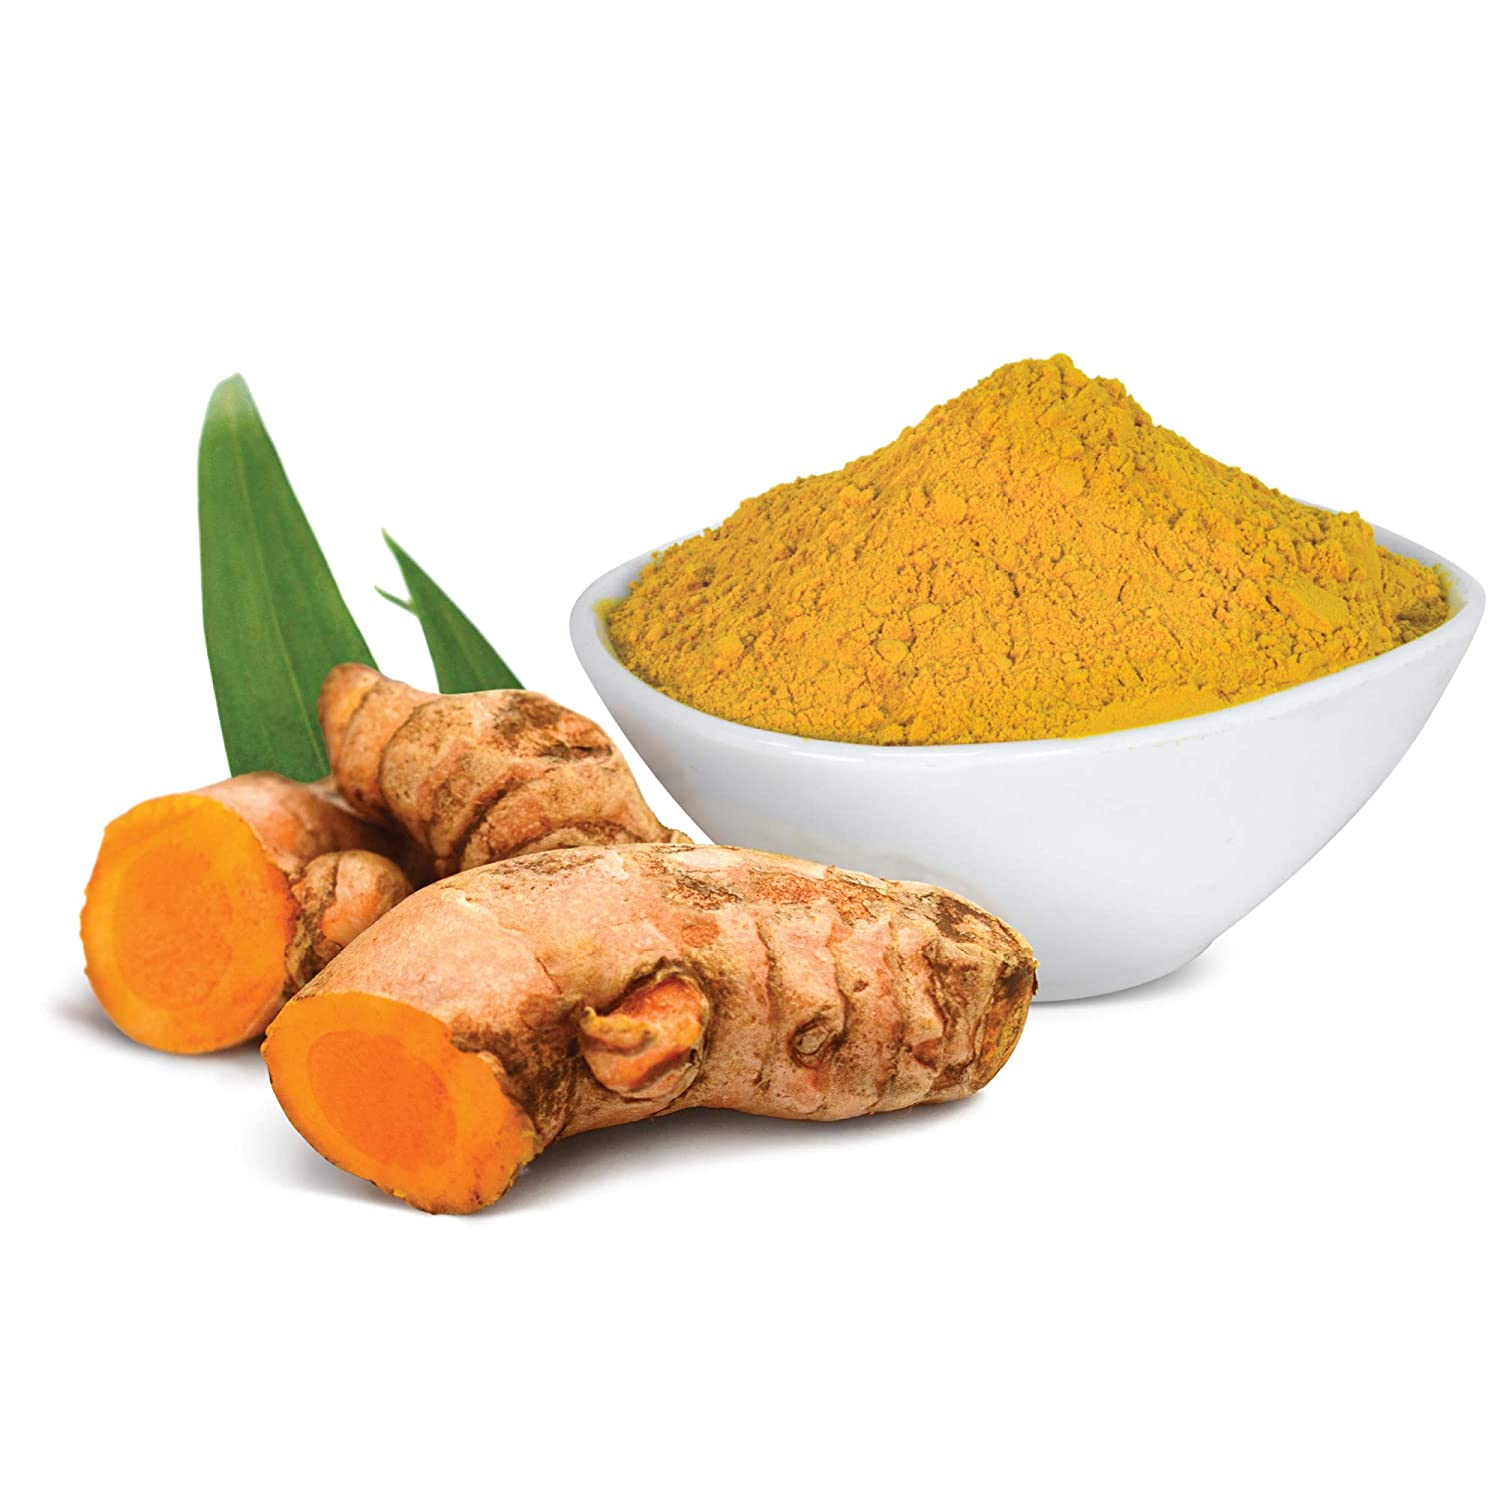 Sunfood Superfoods Organic Turmeric Root Powder